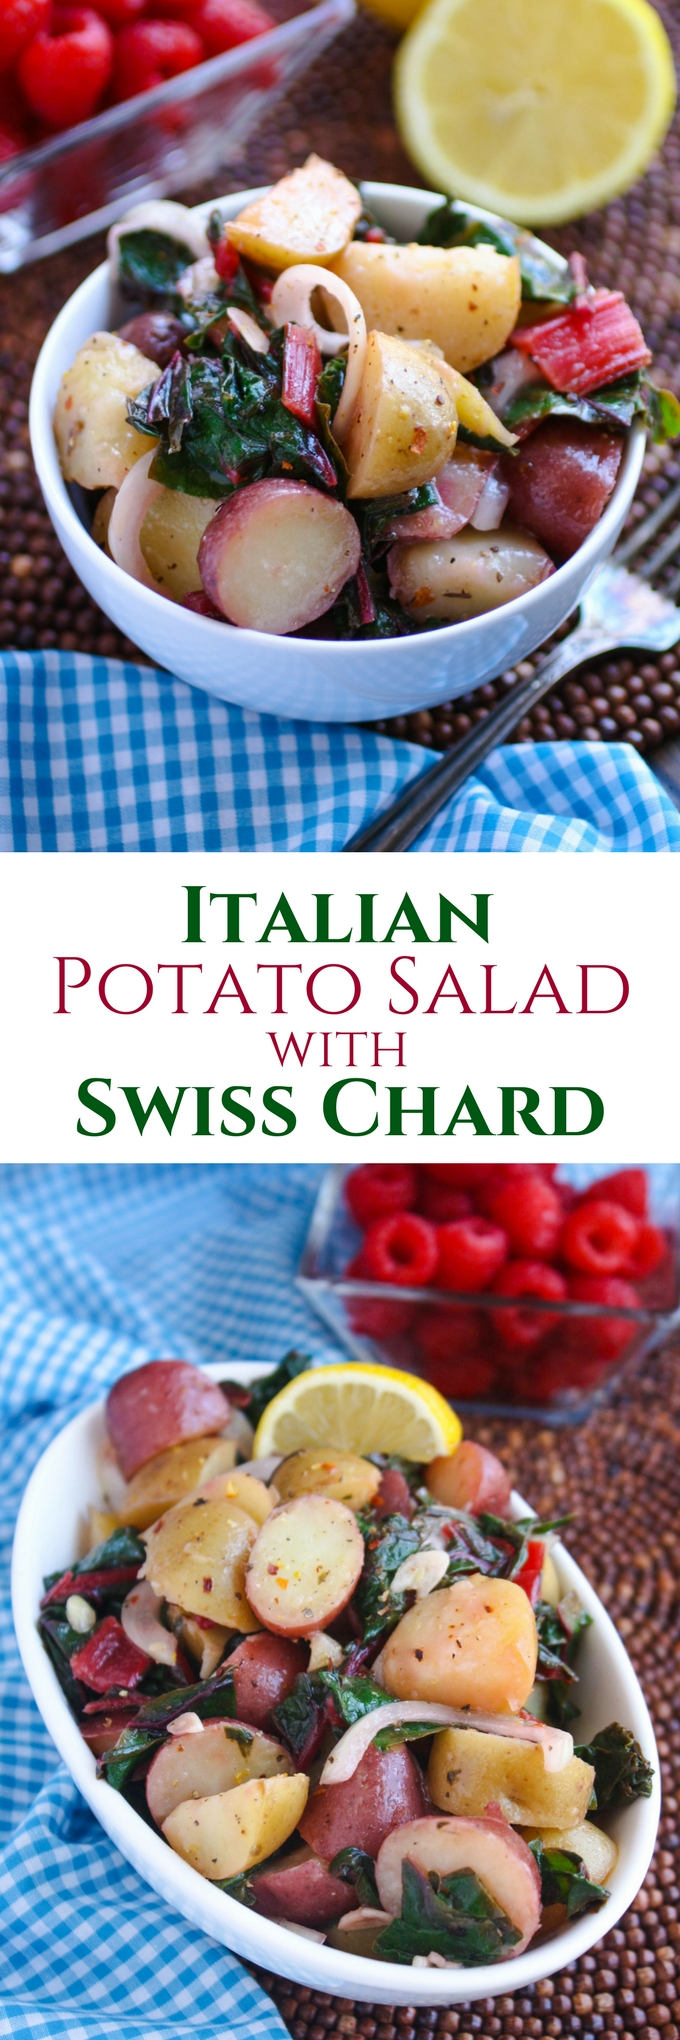 Italian Potato Salad with Swiss Chard is party-perfect. Make this side dish all summer long! It's big on flavor and has a healthier twist than the traditional kind.